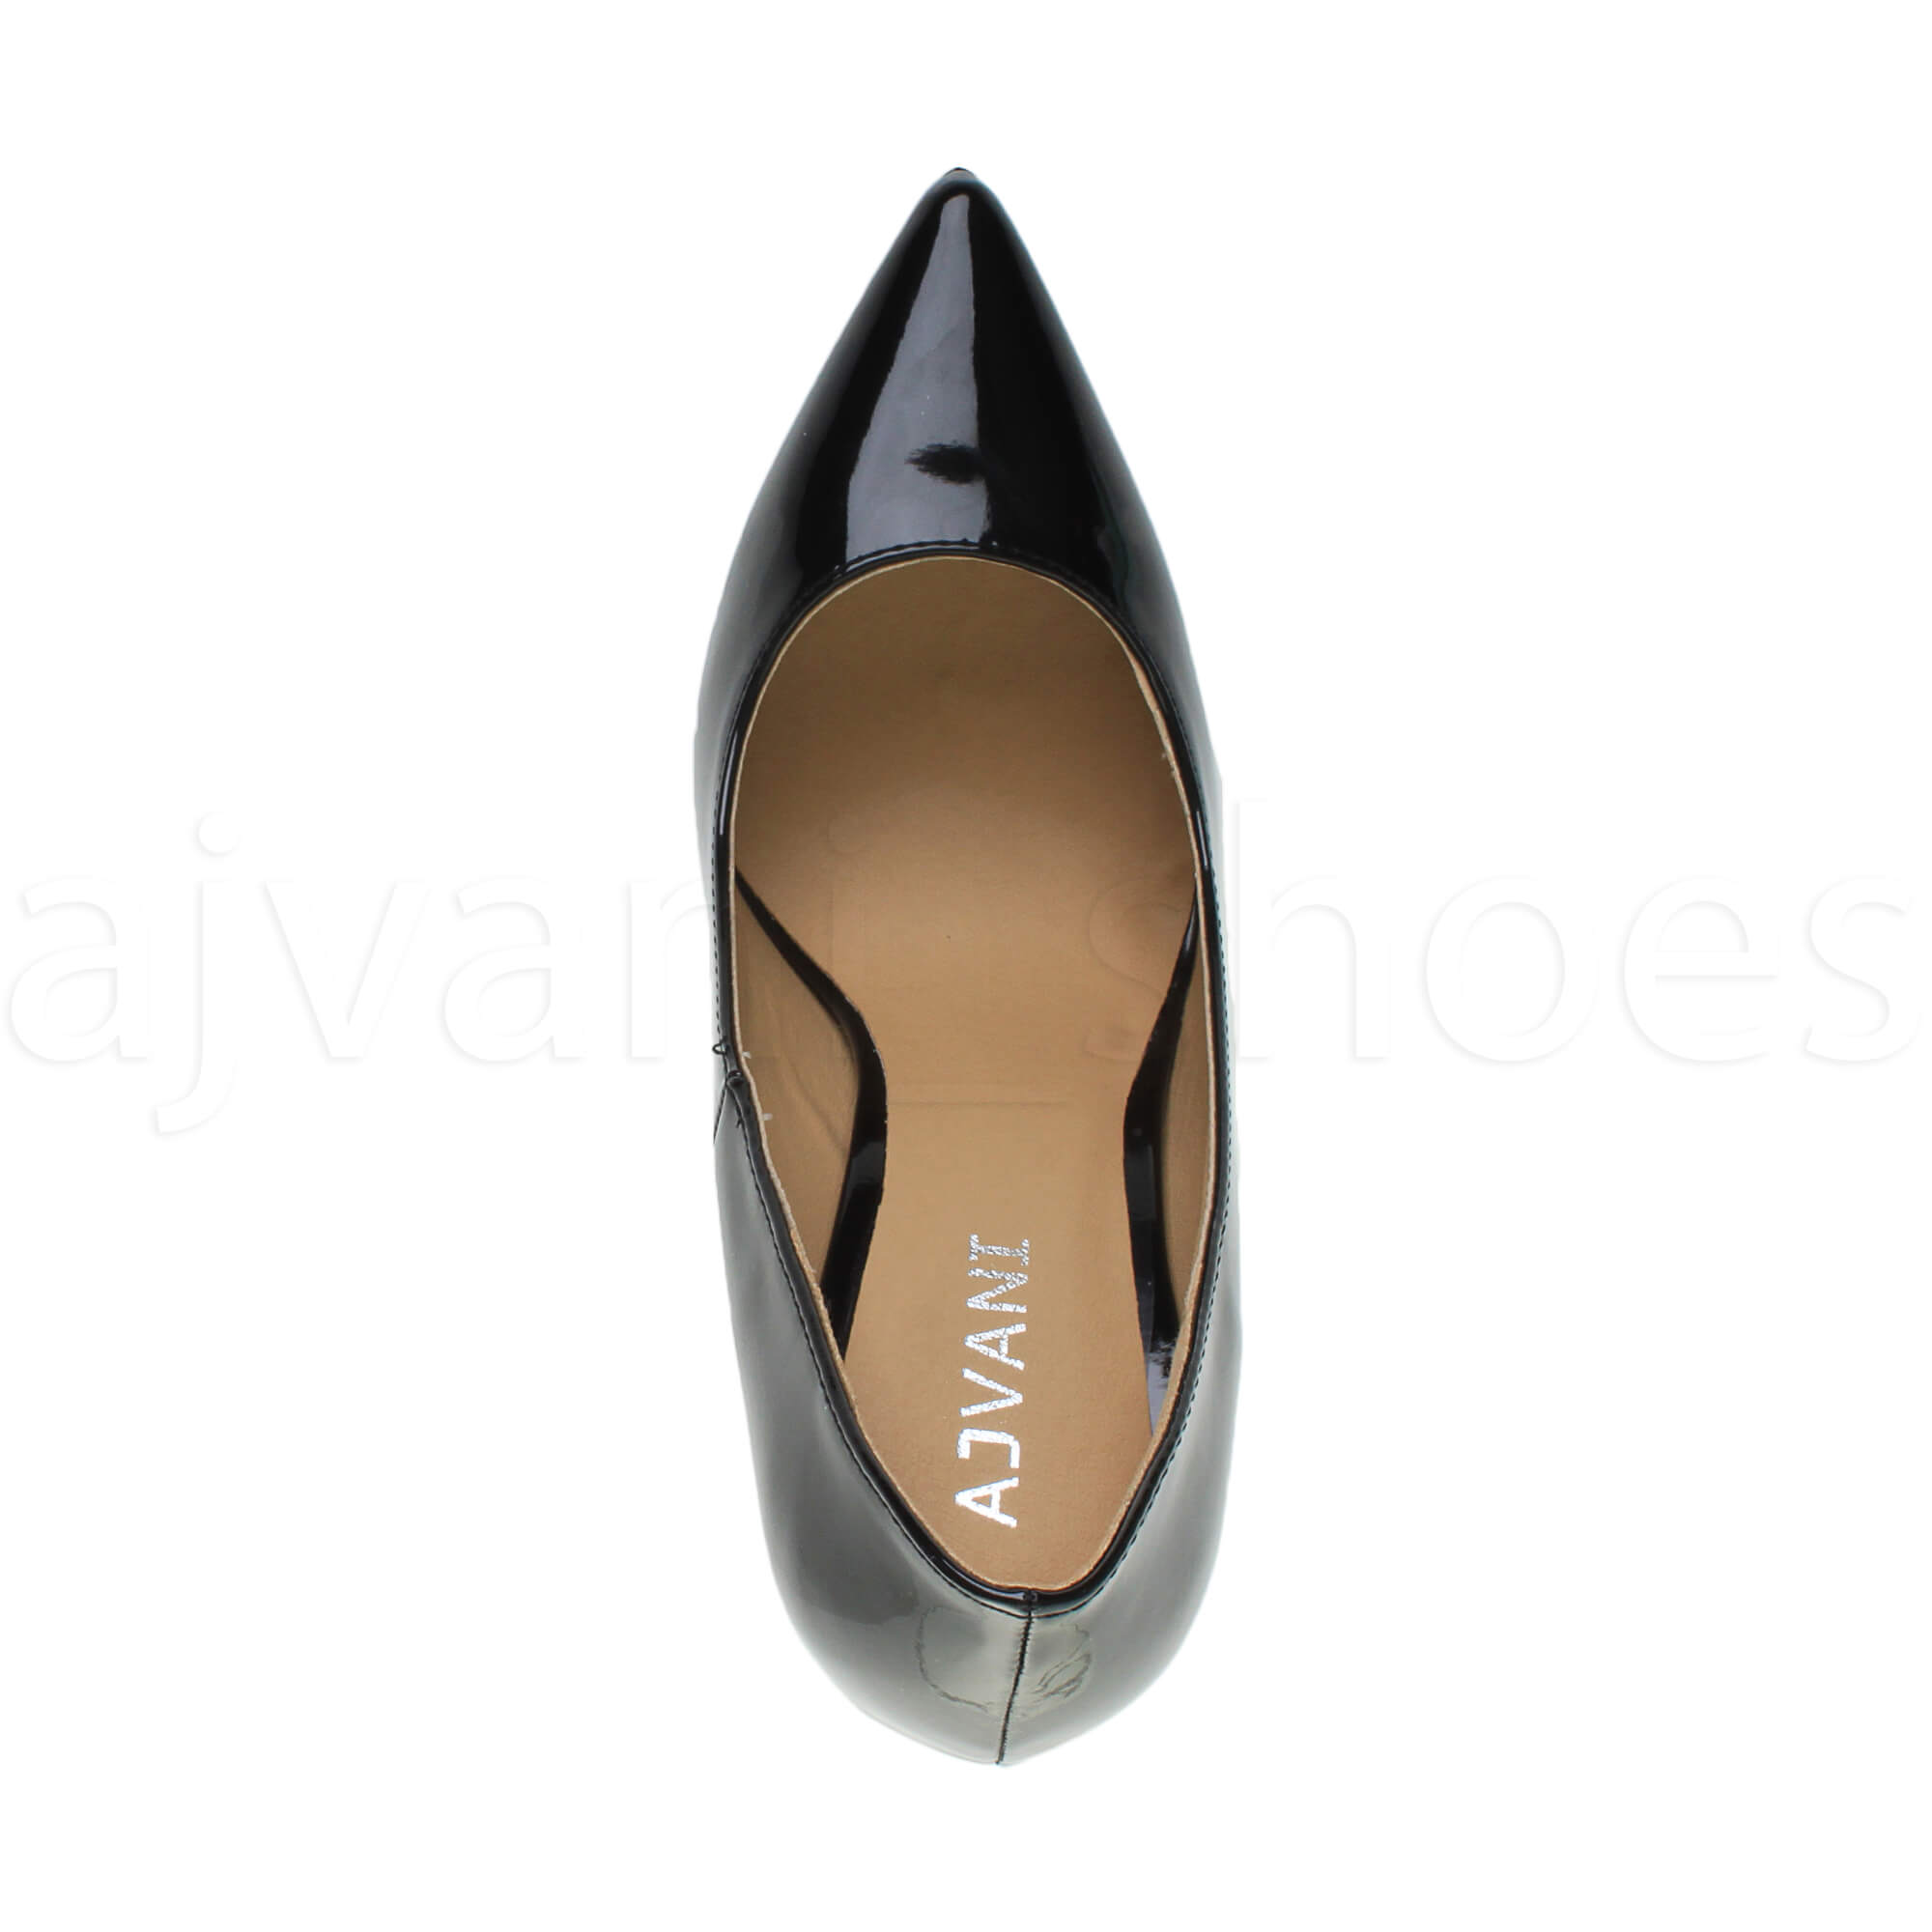 WOMENS-LADIES-HIGH-HEEL-POINTED-CONTRAST-COURT-SMART-PARTY-WORK-SHOES-PUMPS-SIZE thumbnail 24